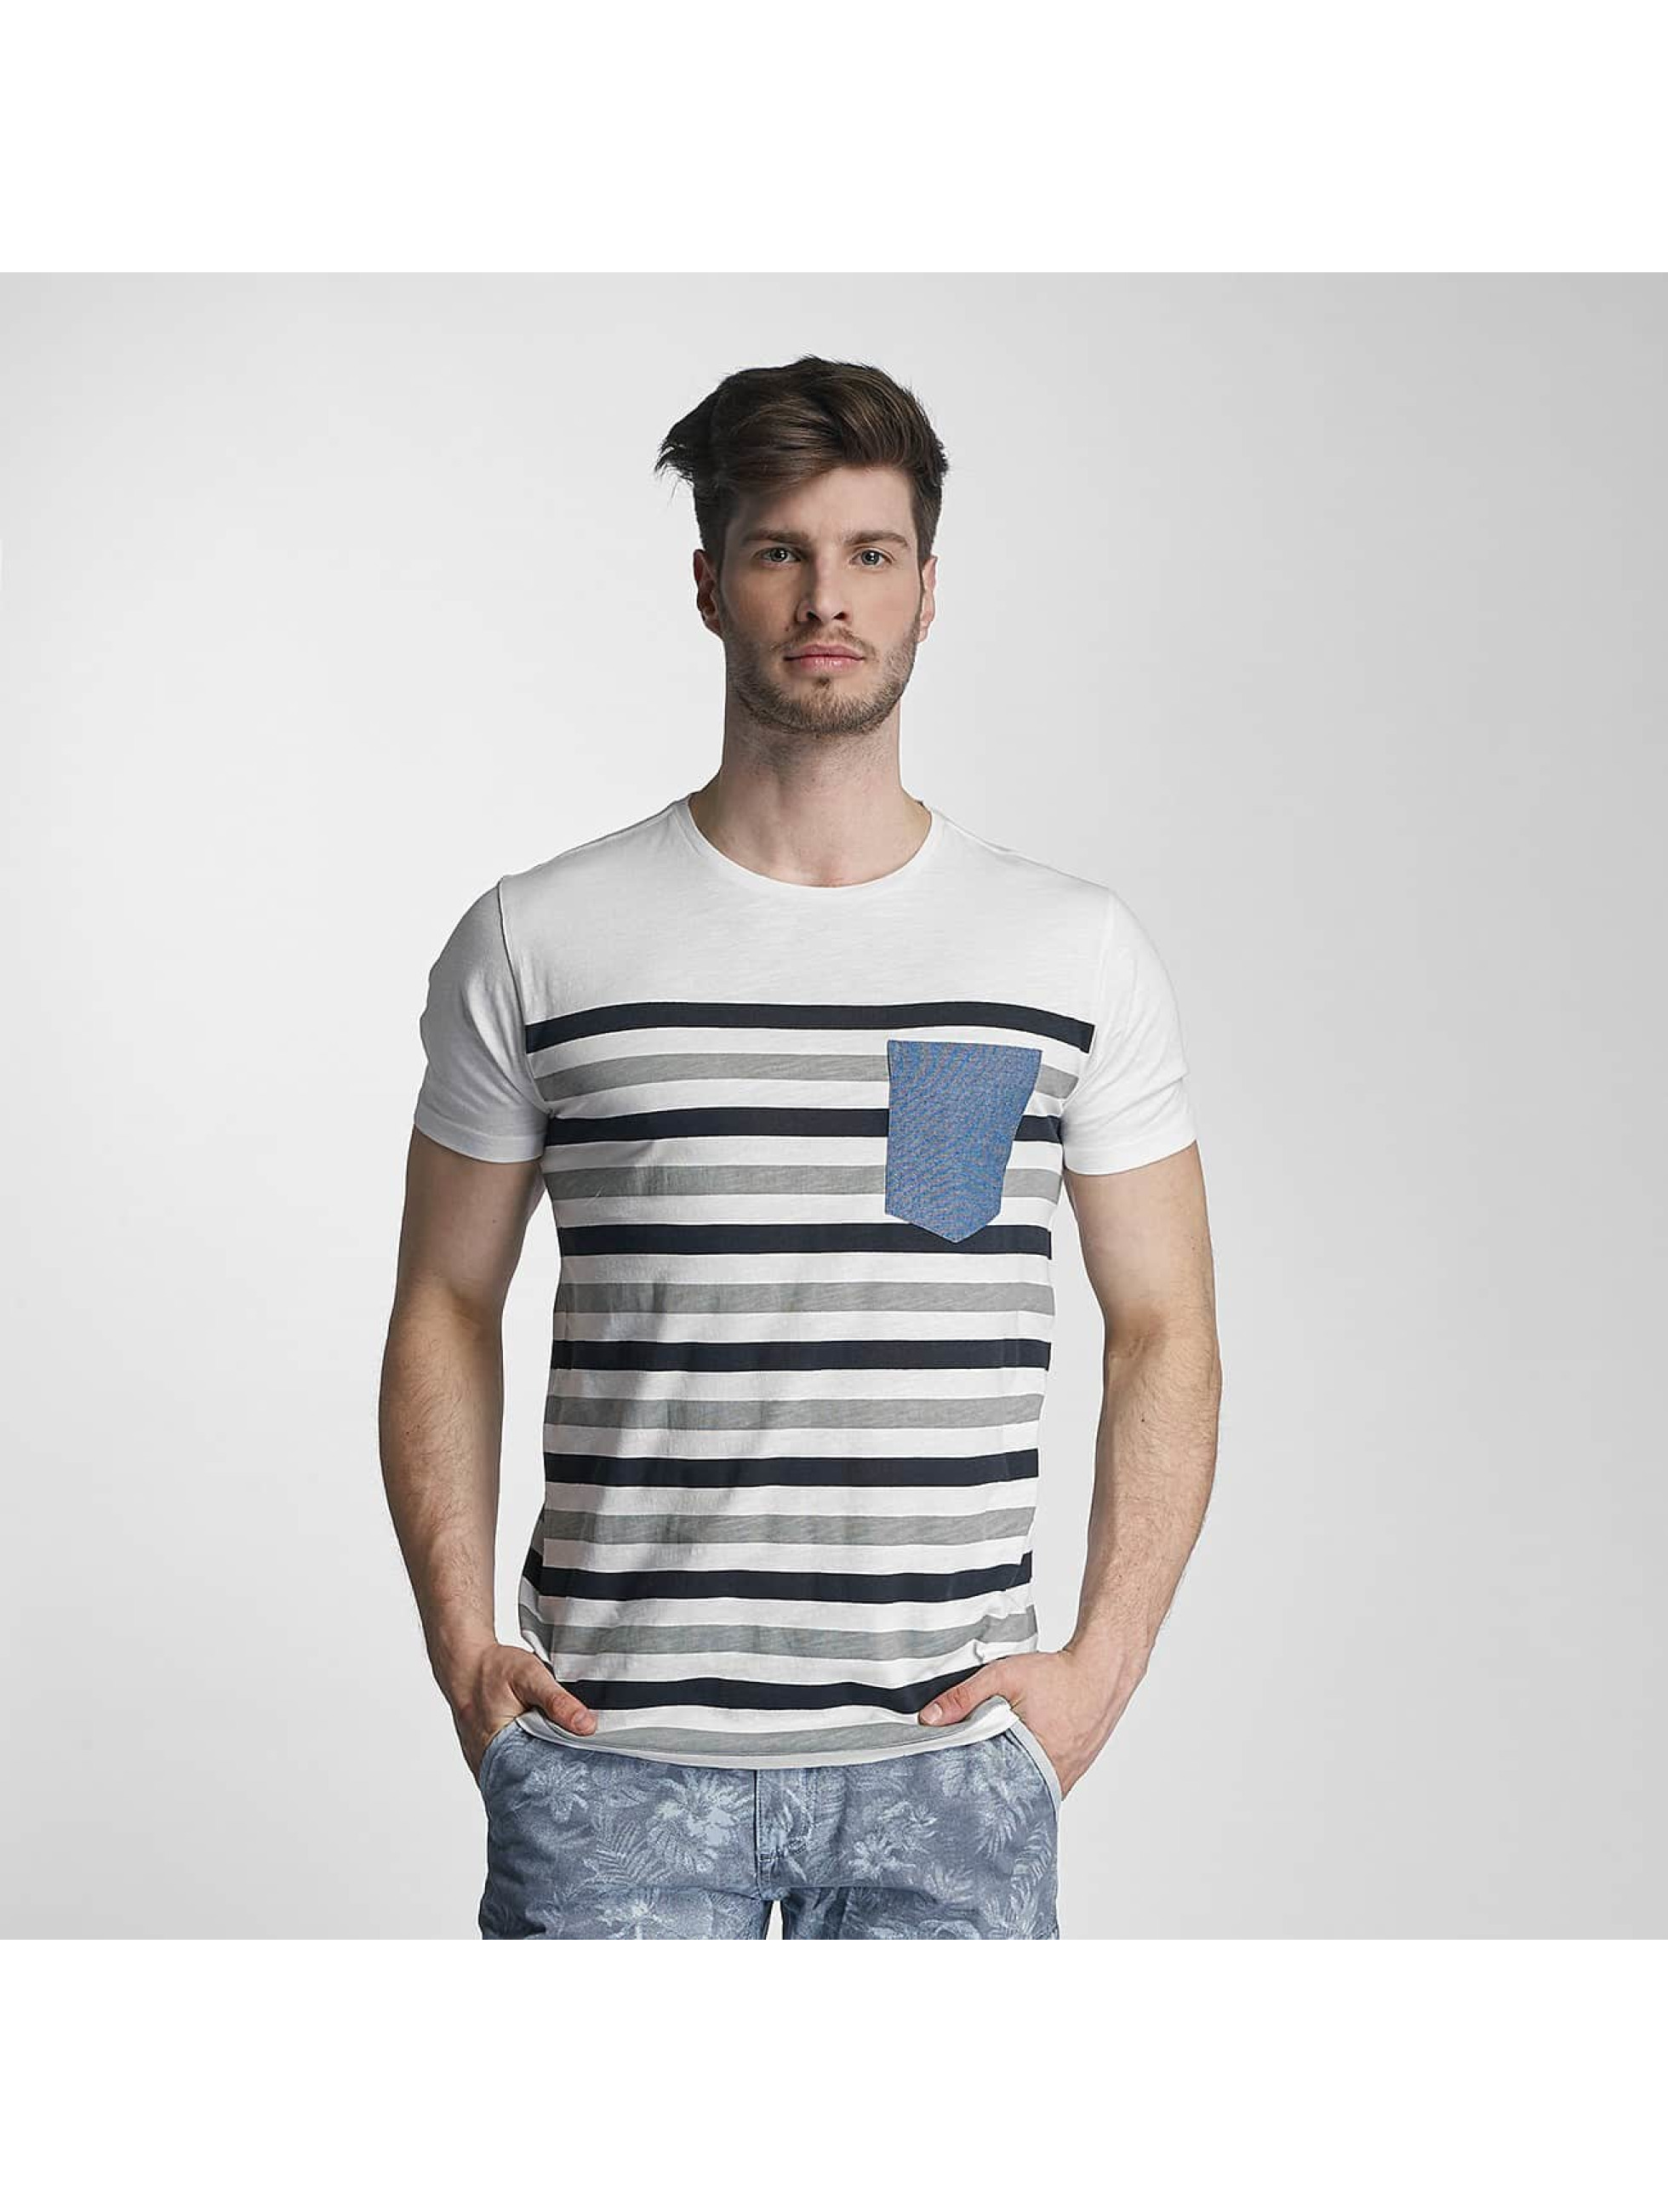 SHINE Original T-Shirt Striped grau